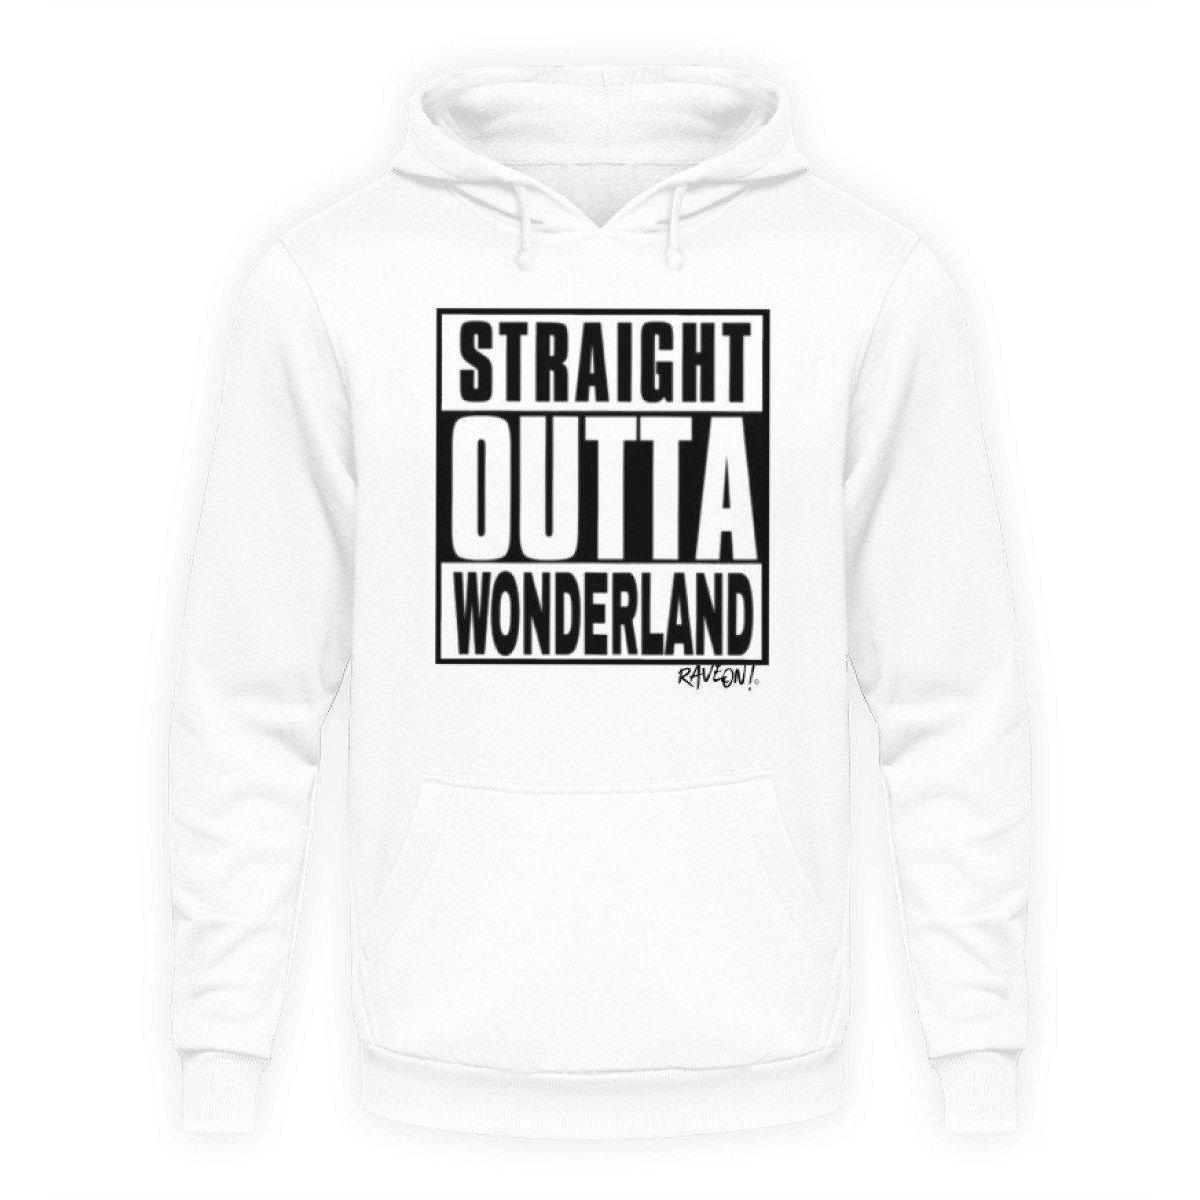 STRAIGHT OUTTA WONDERLAND by Rave On!® - Unisex Hooded Sweater Hoodie Unisex Hoodie Arctic White / L - Rave On!® the club & techno scene shop for cool young fashion streetwear style & fashion outfits + sexy festival 420 stuff